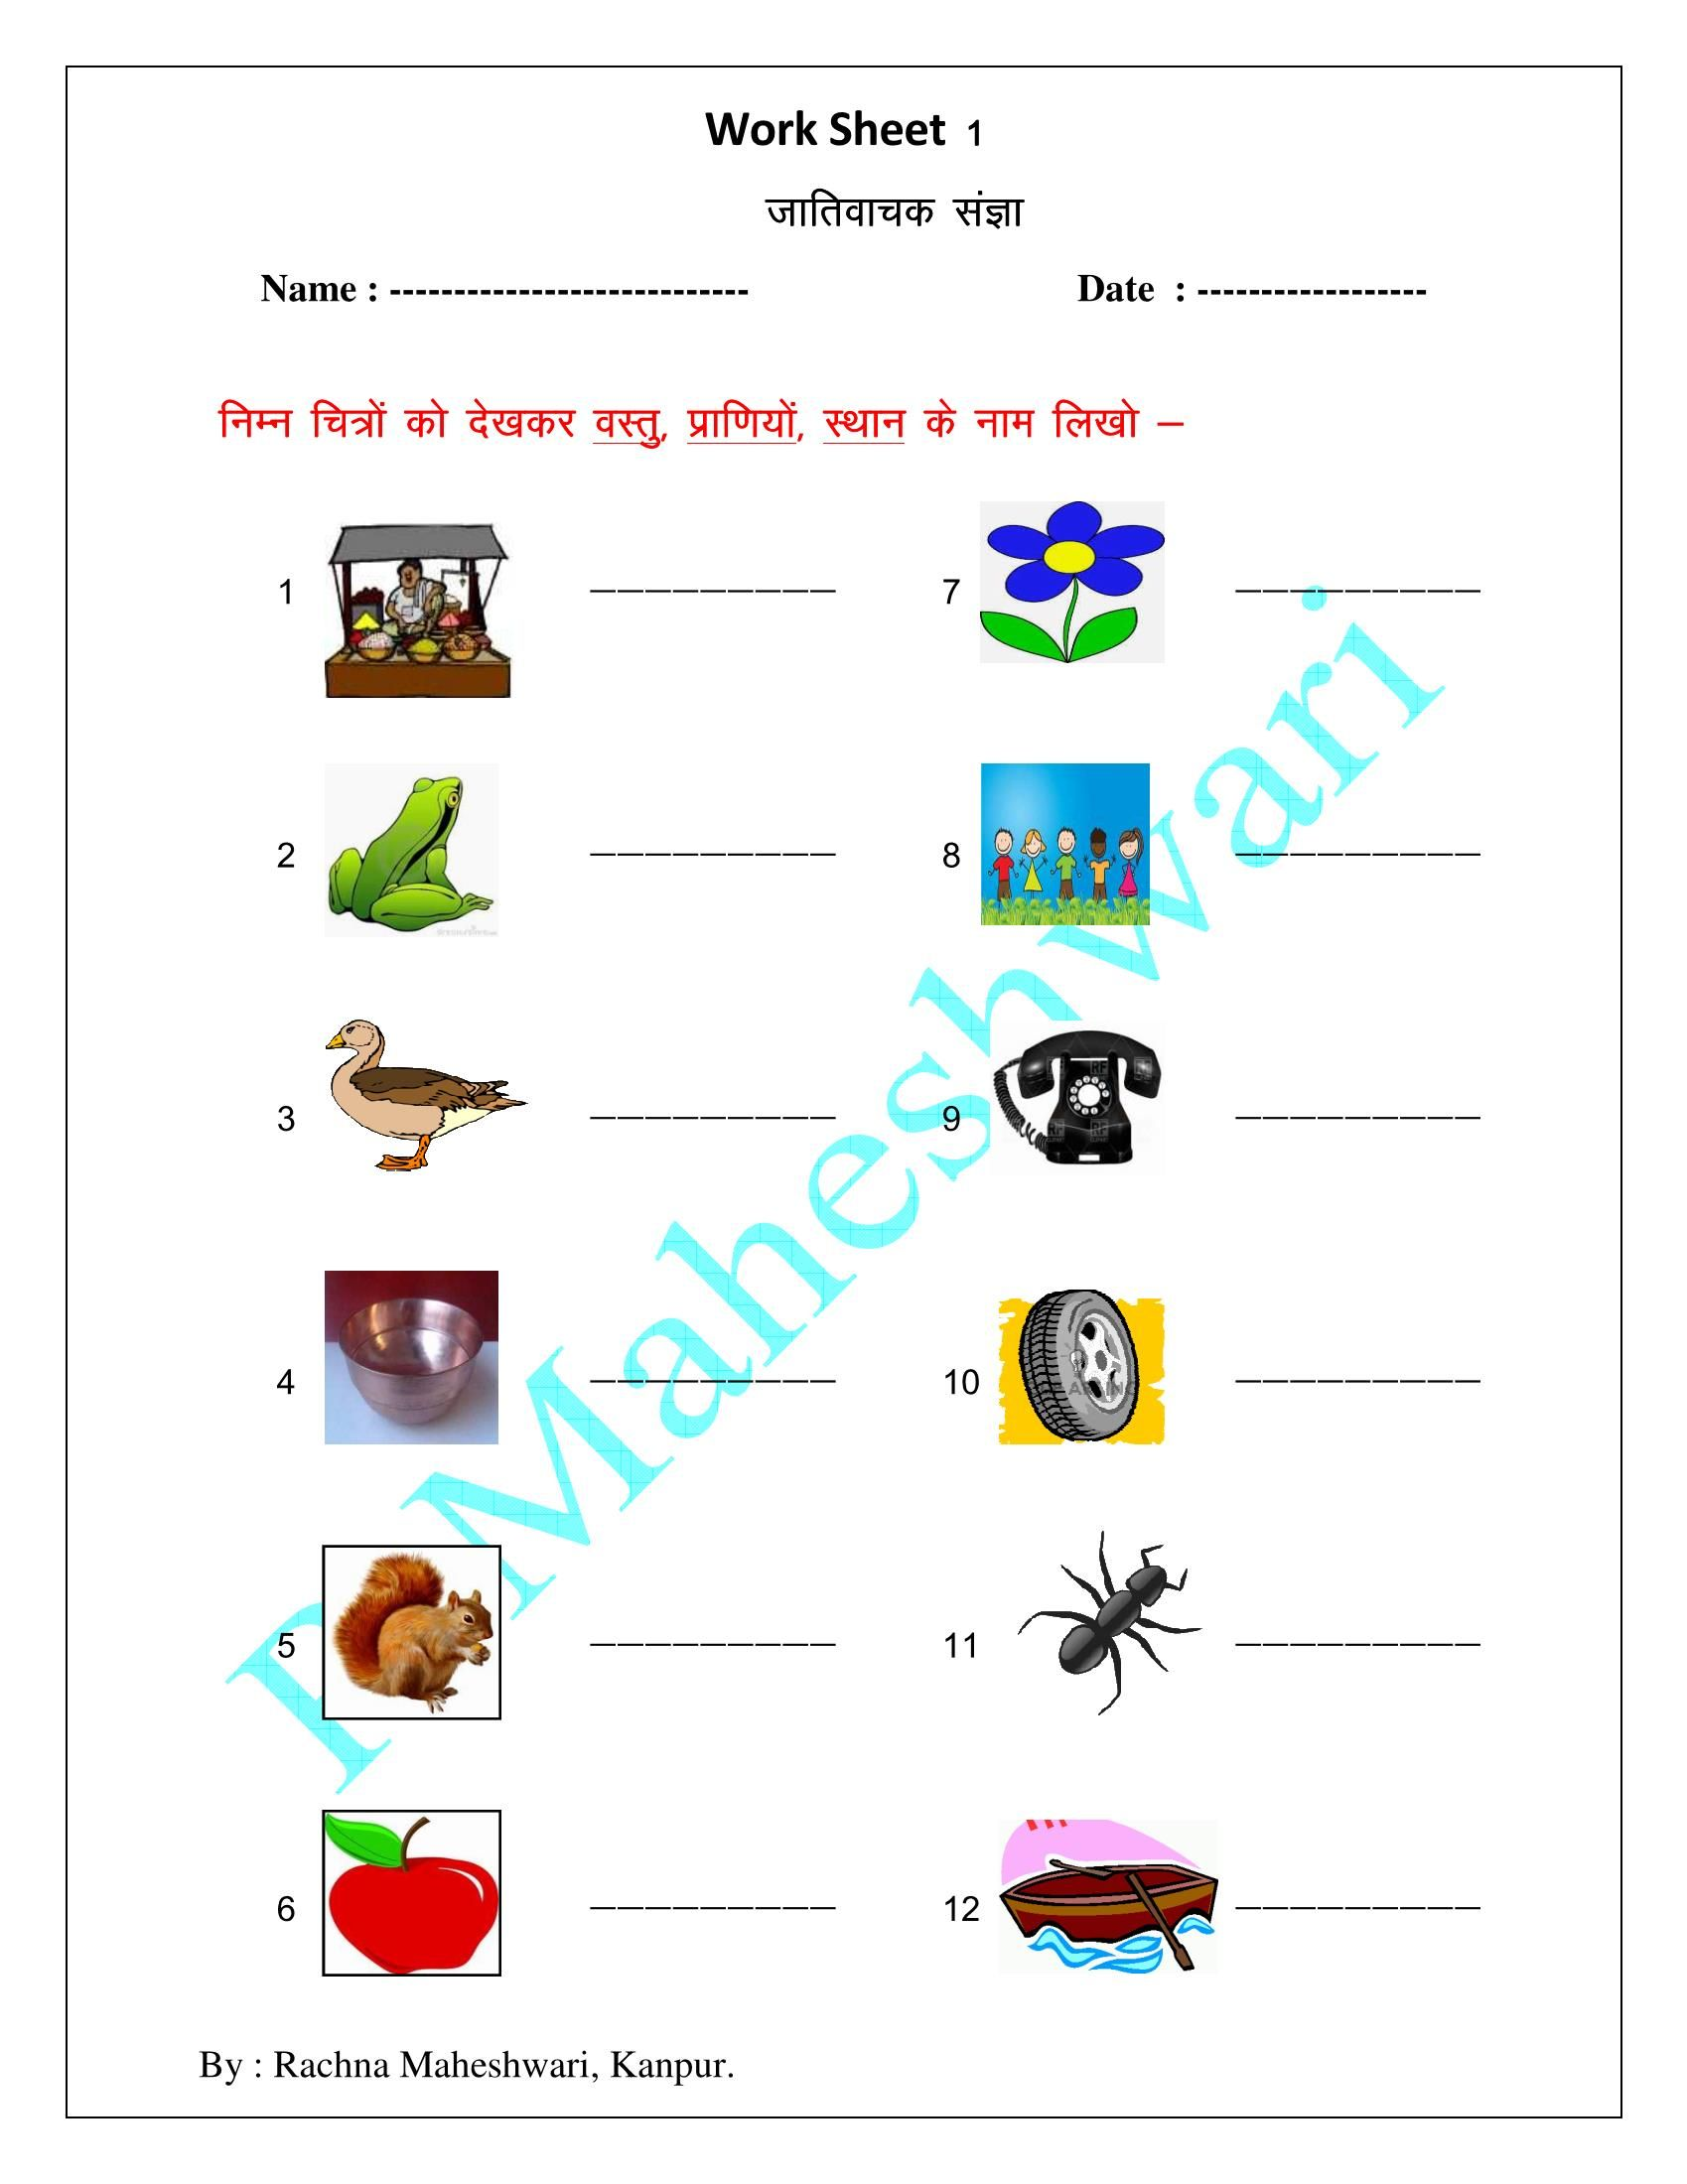 Hindi Gender Worksheet Printable Worksheets And Activities For Teachers Parents Tutors And Homeschool Families